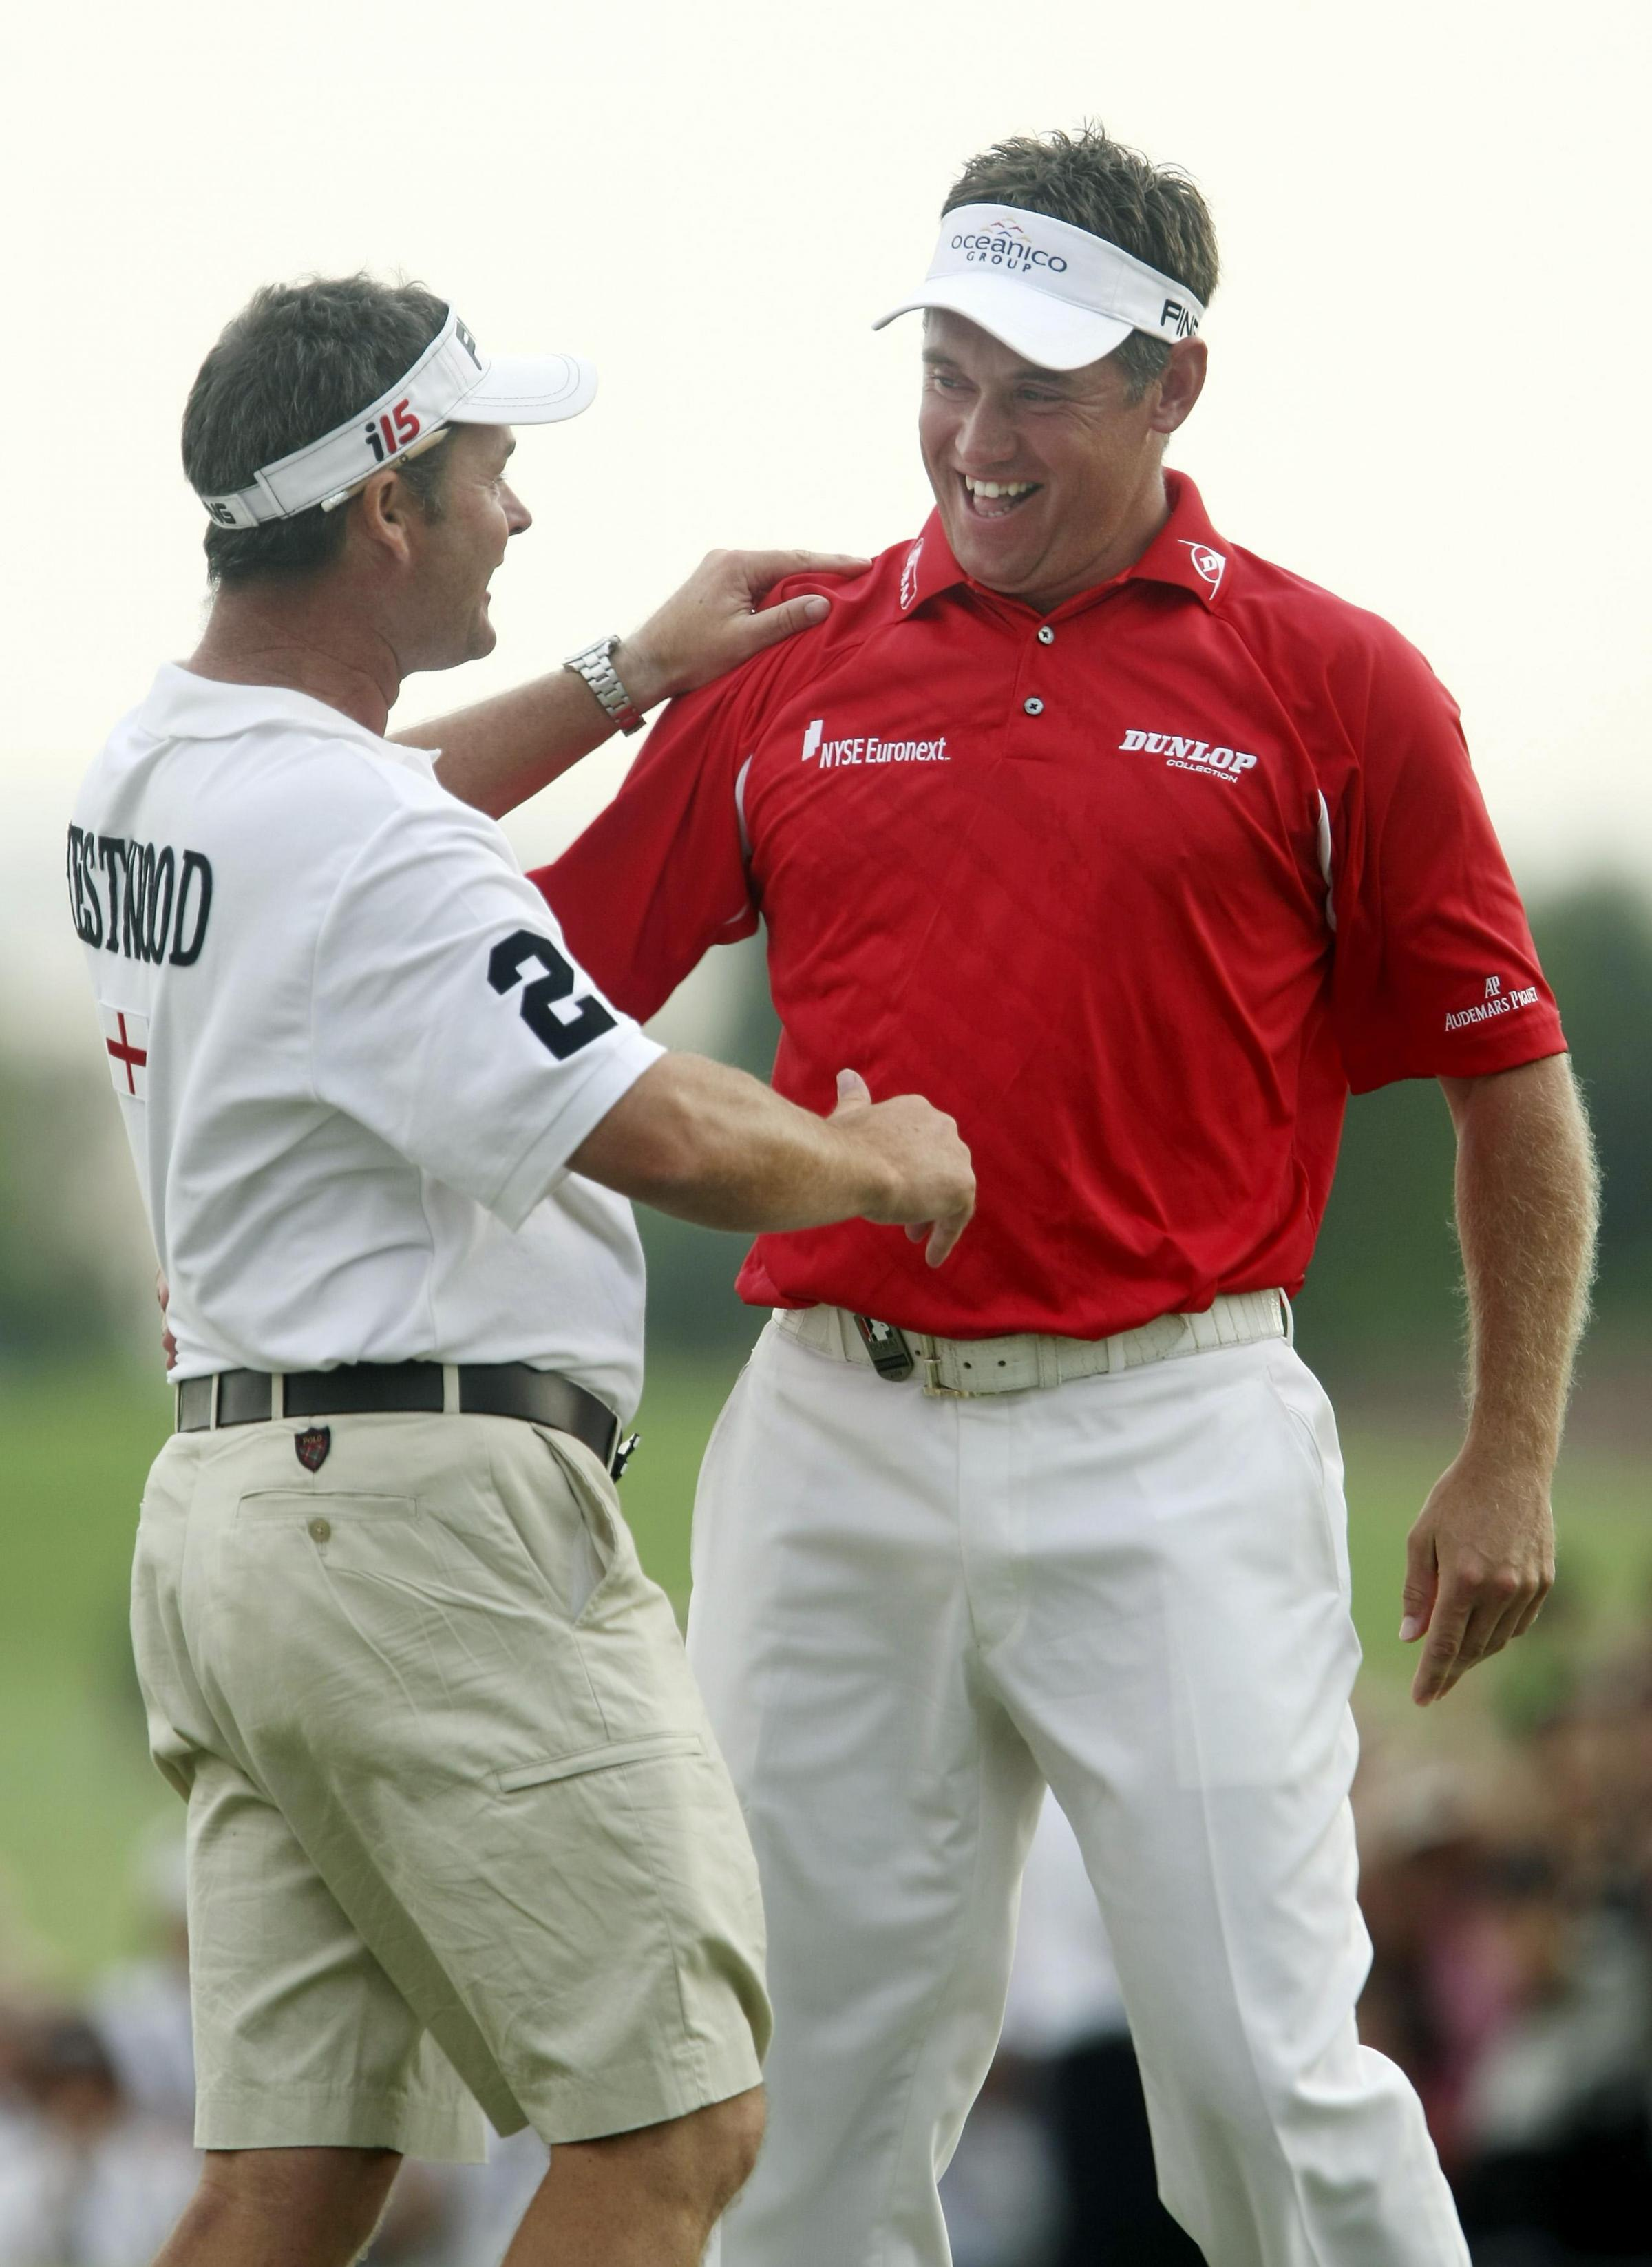 FLASHBACK: Bingley St Ives caddy Billy Foster celebrates with Lee Westwood, right, during the Englishman's Race to Dubai success in 2009. The pair have ended their ten-year partnership